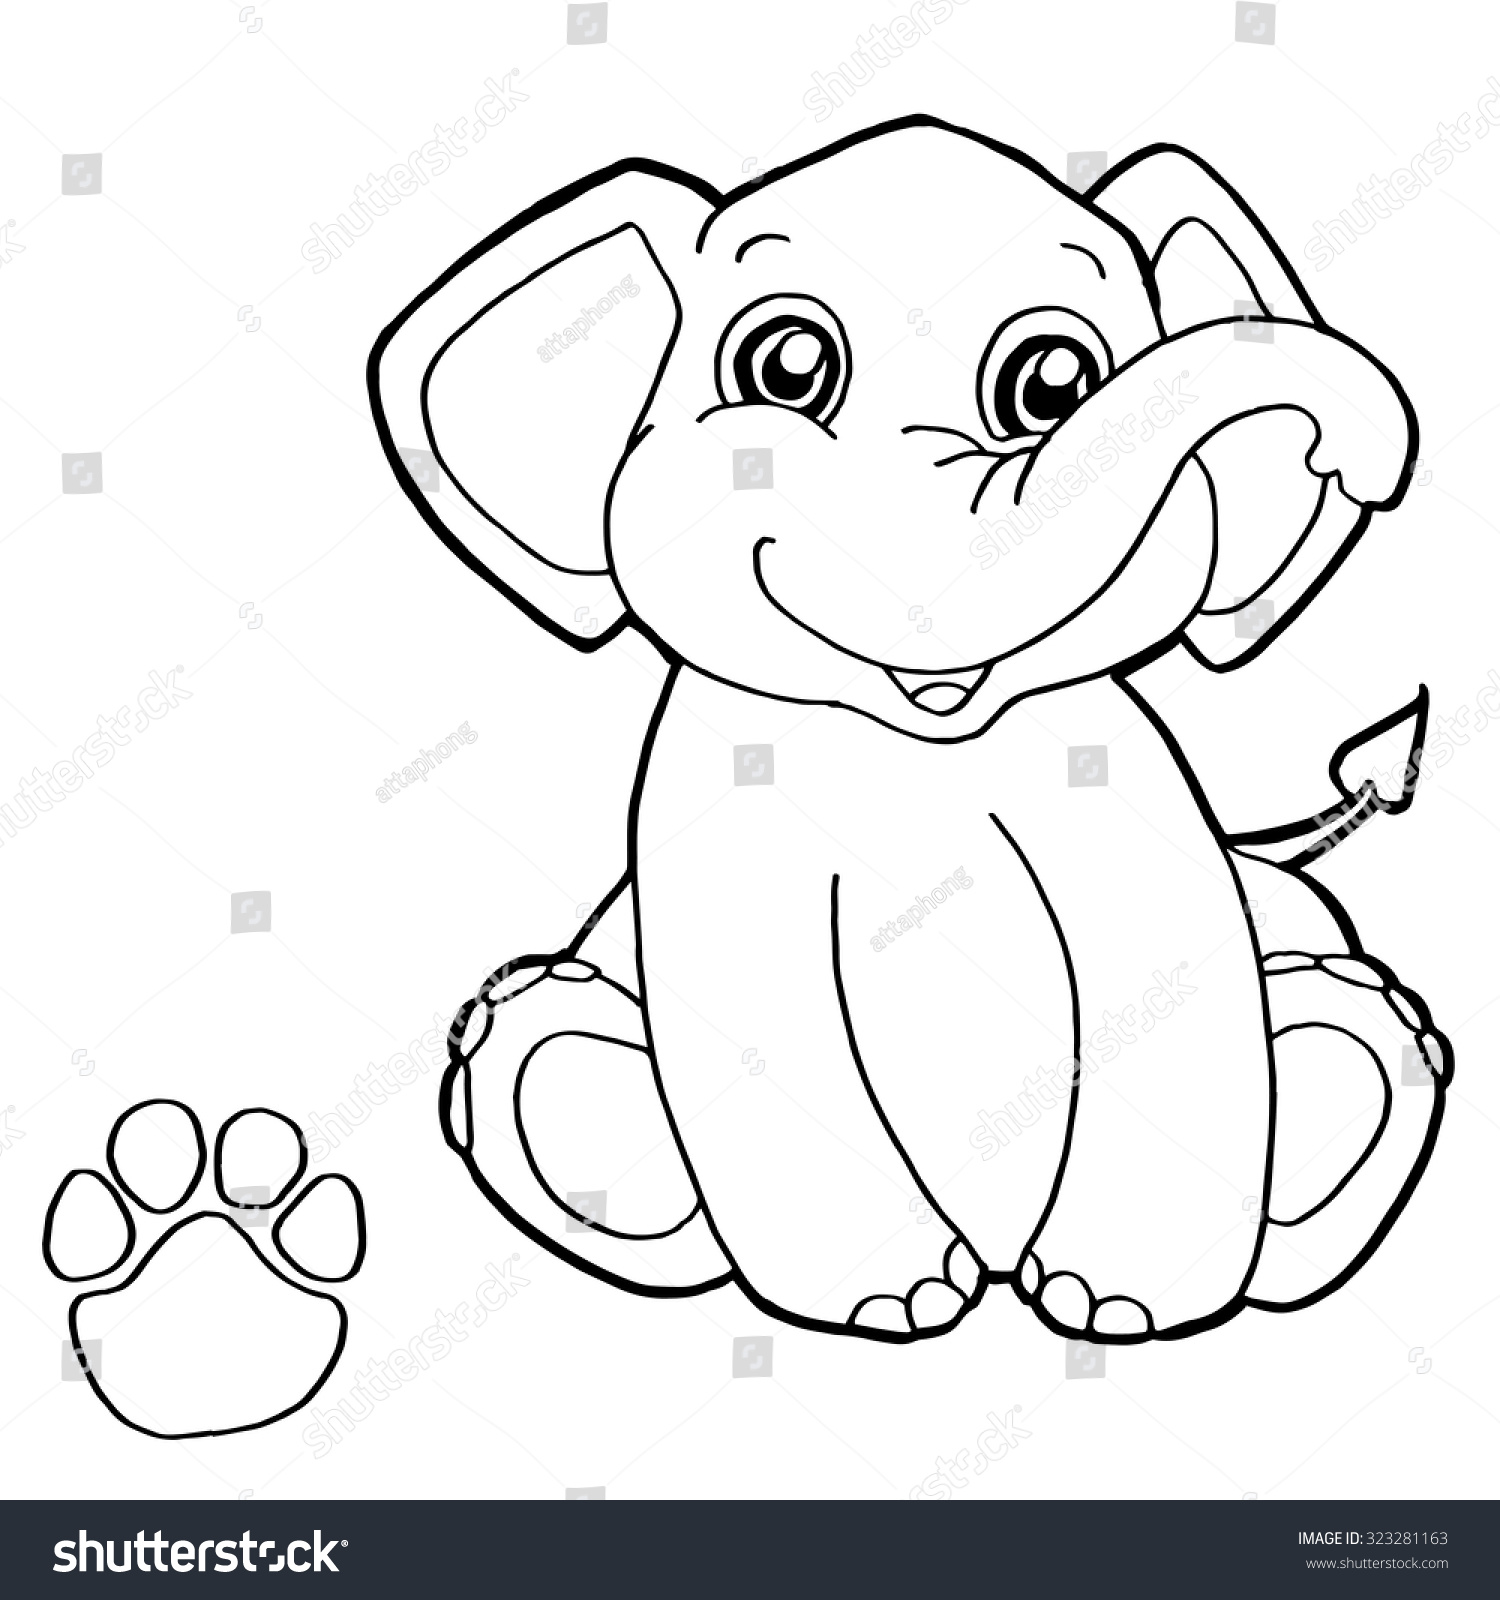 paw print elephant coloring page vector stock vector 323281163